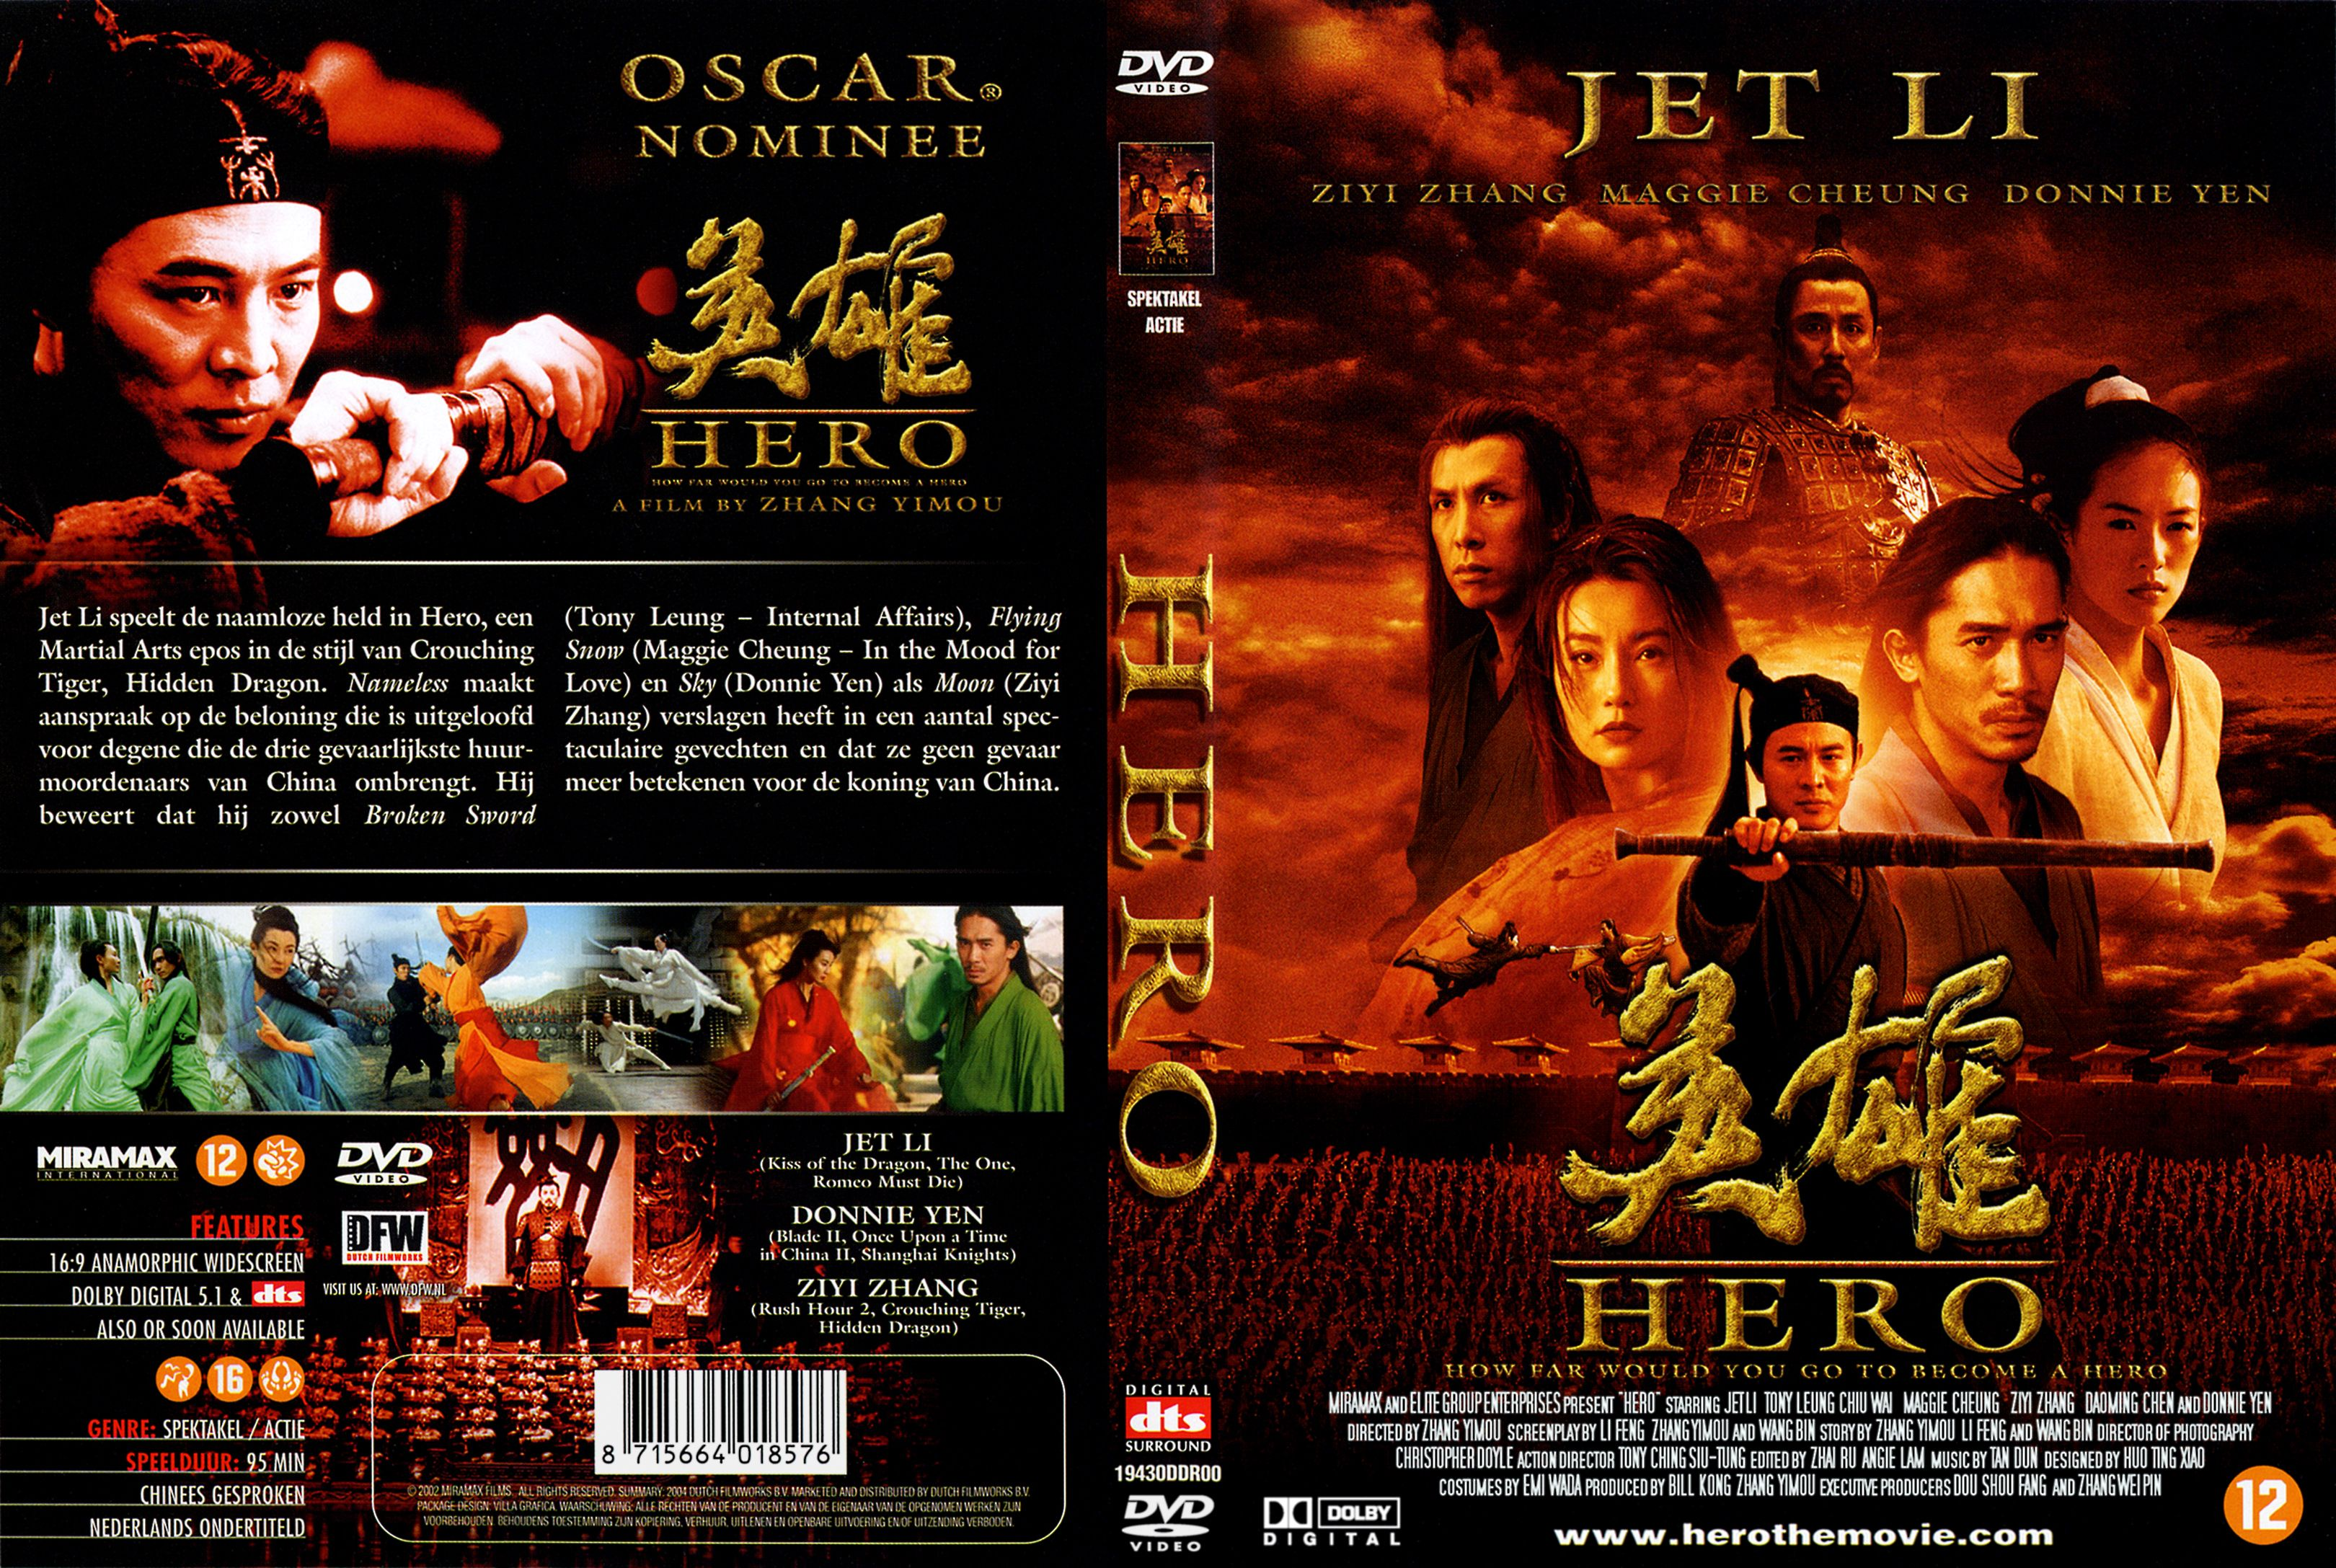 Hero R2 Dutch Scan Blackpanther Blackpanther Misc Dvd Dvd Covers